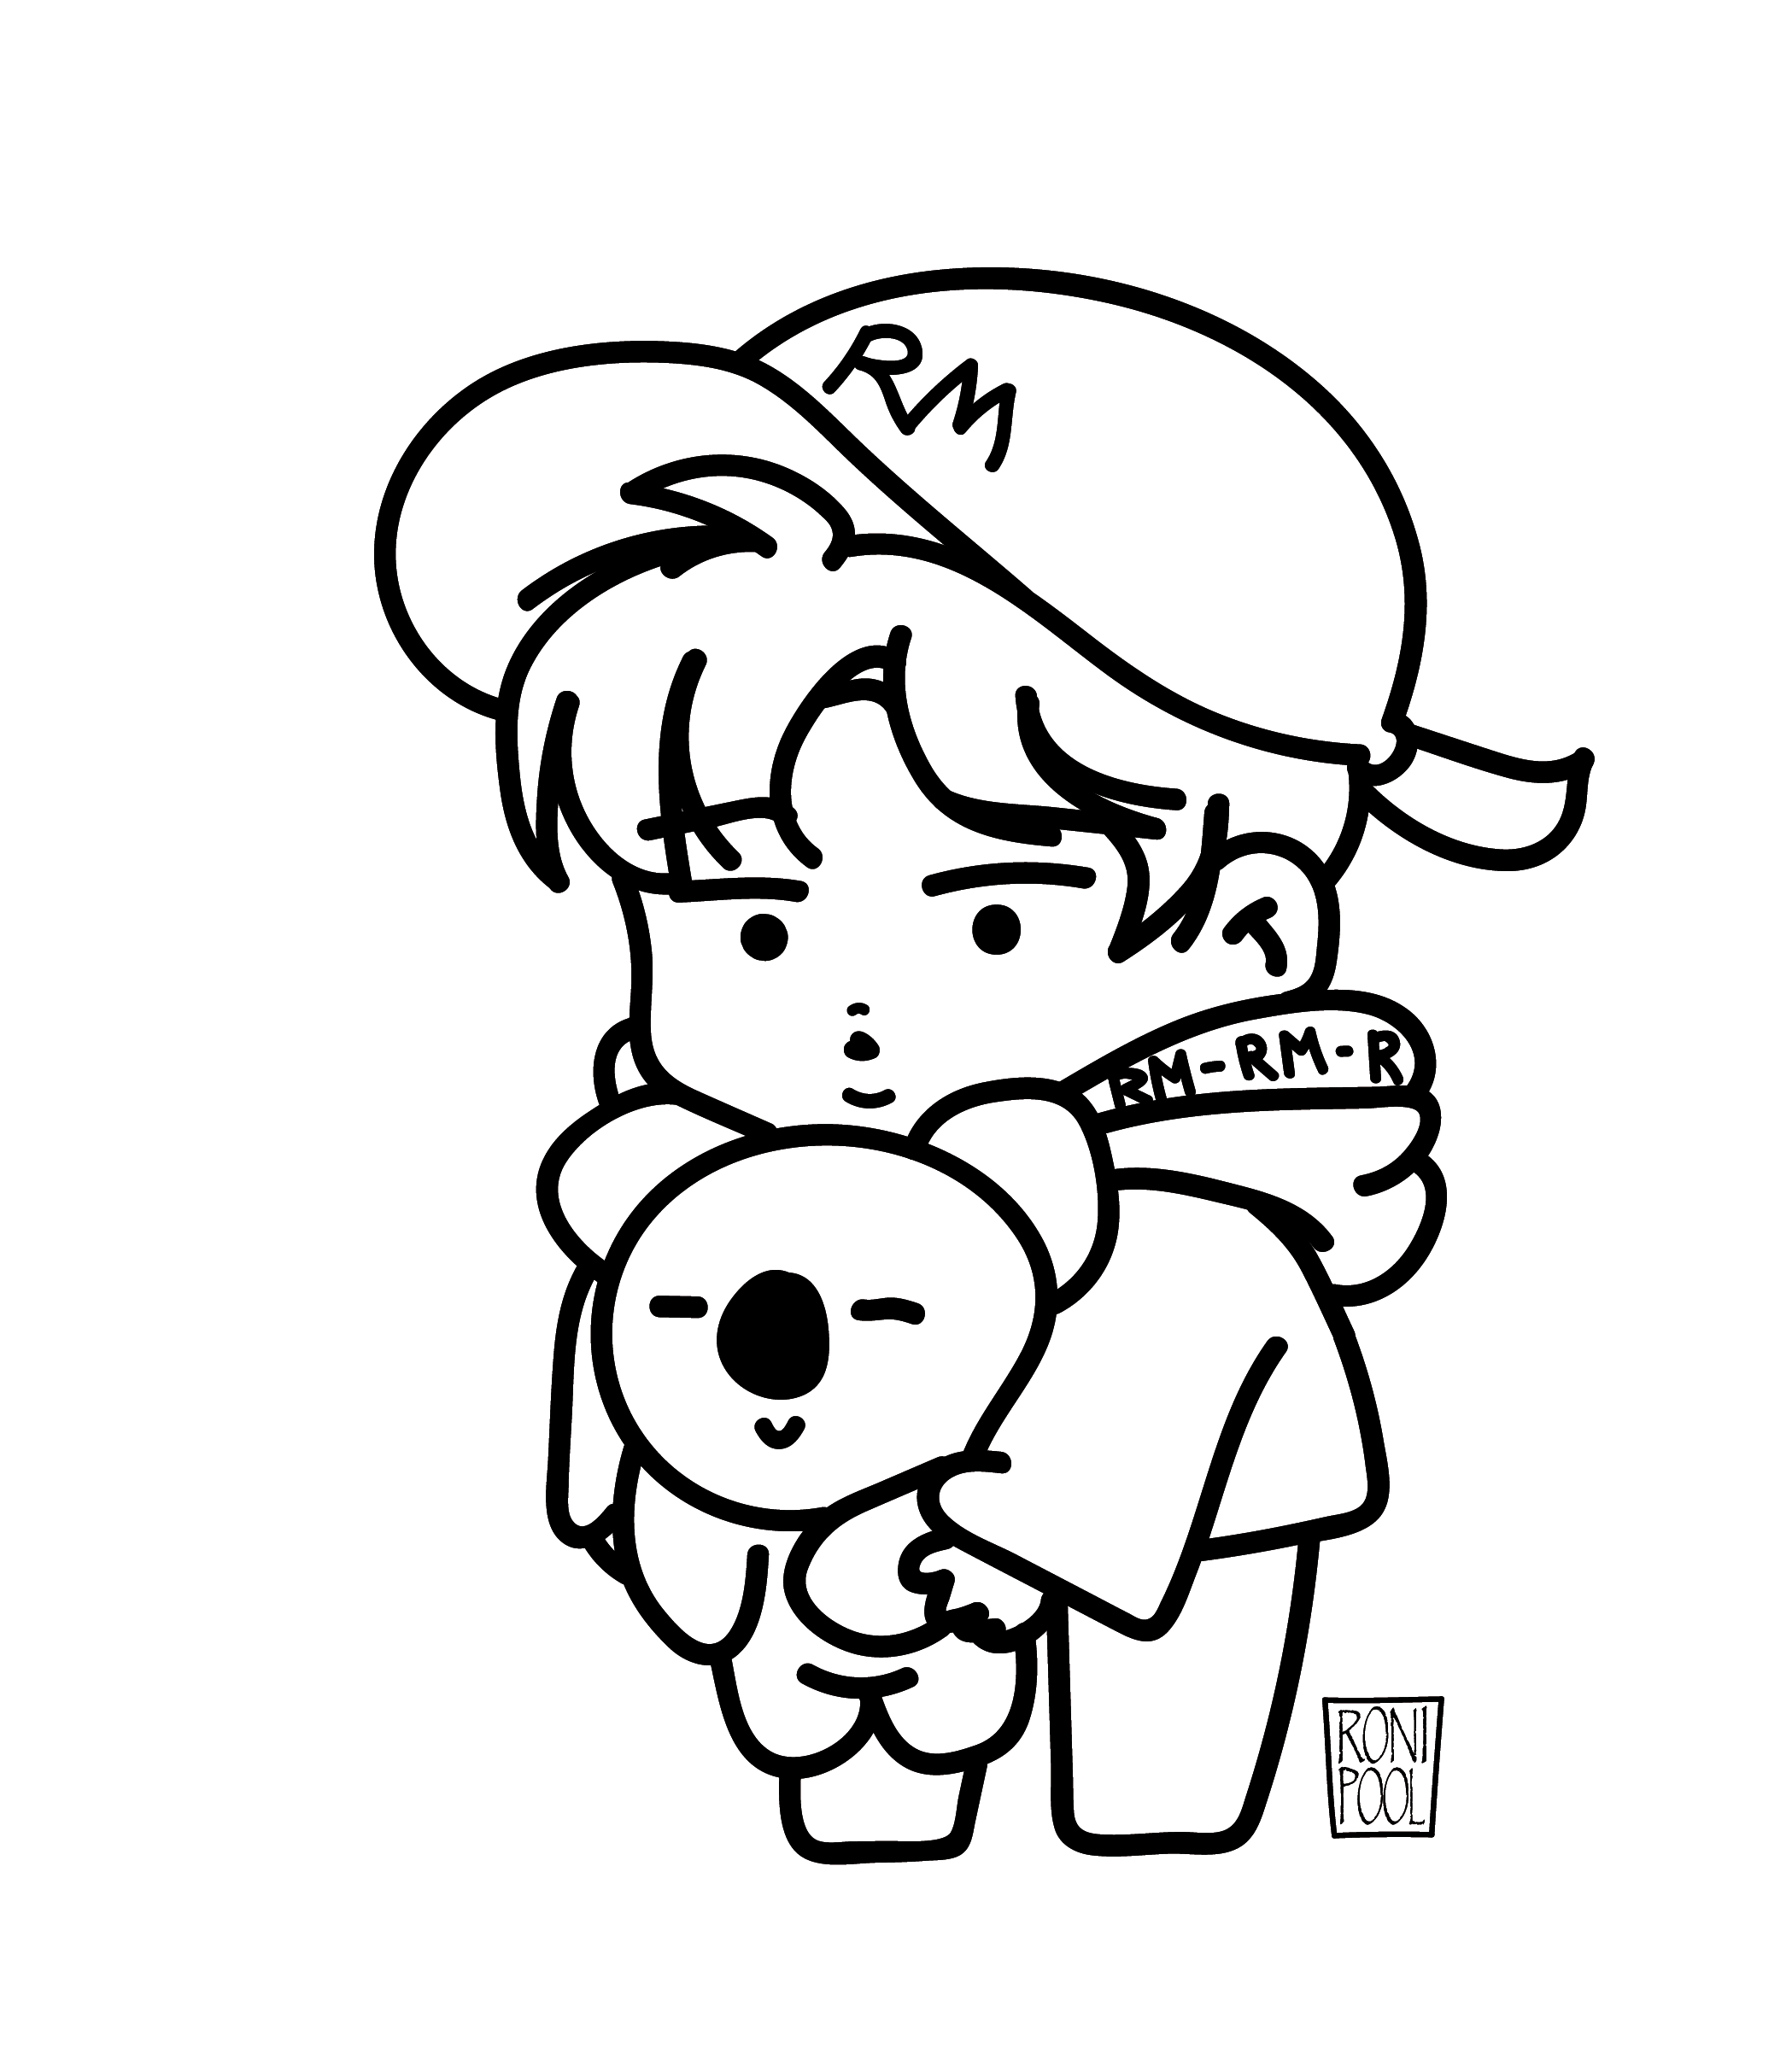 Bts Fanart Bt21 Namjoon Rm And Koya Chibi Speed Drawing Roni Pool Bts Drawings Chibi Coloring Pages Sketch Book